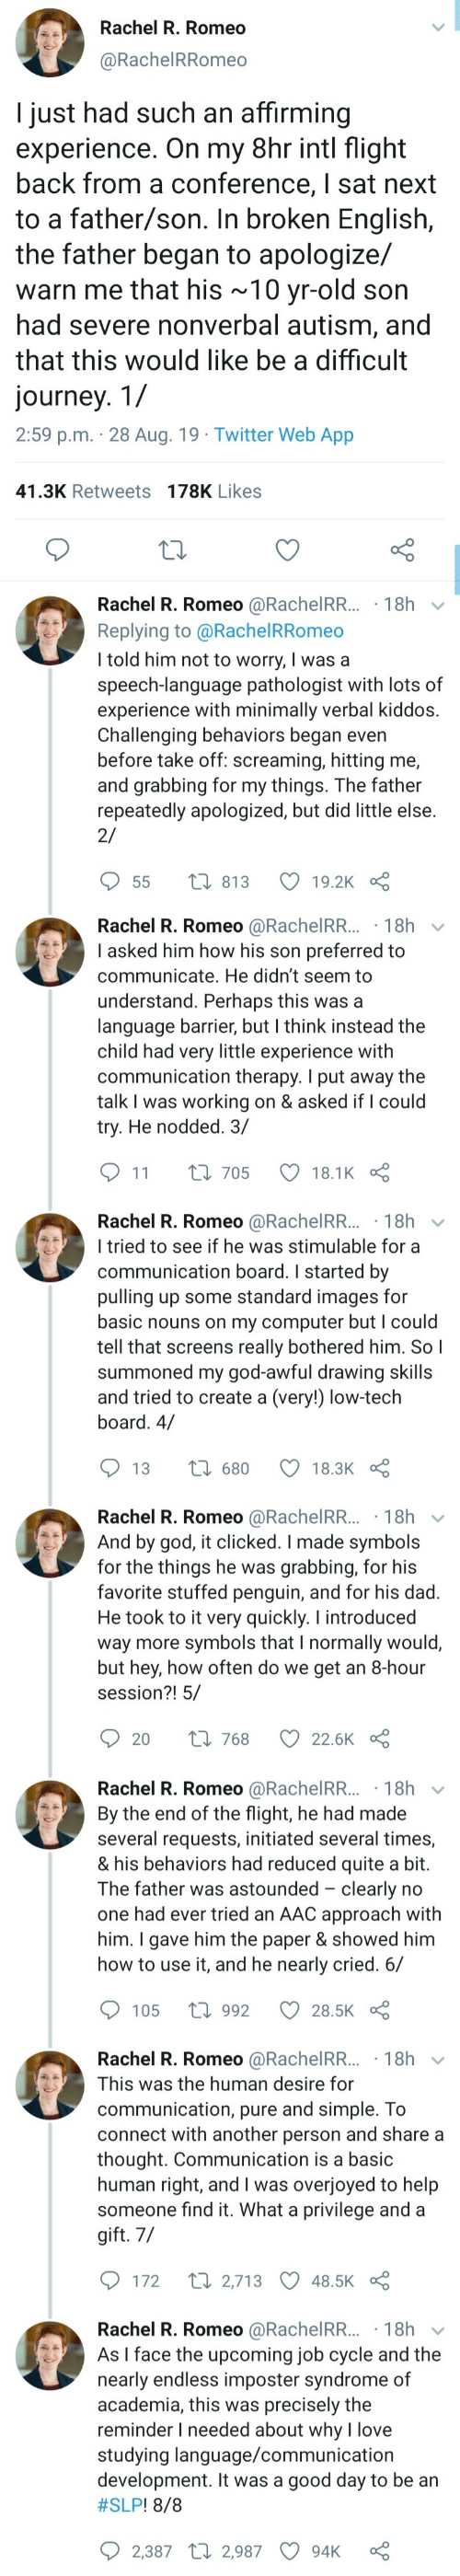 the end of the: Rachel R. Romeo  @RachelRRomeo  I just had such an affirming  experience. On my 8hr intl flight  back from a conference, I sat next  to a father/son. In broken English,  the father began to apologize/  warn me that his ~10 yr-old son  had severe nonverbal autism, and  that this would like be a difficult  journey. 1/  2:59 p.m. 28 Aug. 19 Twitter Web App  41.3K Retweets 178K Likes  Rachel R. Romeo @RachelRR... 18h  Replying to @Rachel RRomeo  I told him not to worry, I was a  speech-language pathologist with lots of  experience with minimally verbal kiddos.  Challenging behaviors began even  before take off: screaming, hitting me,  and grabbing for my things. The father  repeatedly apologized, but did little else  2/  t 813  19.2K  55   Rachel R. Romeo @RachelRR...18h  I asked him how his son preferred to  communicate. He didn't seem to  understand. Perhaps this was a  language barrier, but I think instead the  child had very little experience with  communication therapy. I put away the  talk I was working on & asked if I could  try. He nodded. 3/  11  L 705  18.1K  Rachel R. Romeo @RachelRR... 18h  I tried to see if he was stimulable for a  communication board. I started by  pulling up some standard images for  basic nouns on my computer but I could  tell that screens really bothered him. So I  summoned my god-awful drawing skills  and tried to create a (very!) low-tech  board. 4/  1680  13  18.3K  Rachel R. Romeo @RachelRR... 18h  And by god, it clicked. I made symbols  for the things he was  favorite stuffed penguin, and for his dad.  He took to it very quickly. I introduced  way more symbols that I normally would,  but hey, how often do we get an 8-hour  session?! 5/  grabbing, for his  Li 768  20  22.6K   Rachel R. Romeo @RachelRR... 18h  By the end of the flight, he had made  several requests, initiated several times,  & his behaviors had reduced quite a bit.  The father was astounded clearly no  one had ever tried an AAC approach with  him. I gave him the paper & showed him  how to use it, and he nearly cried. 6/  1992  105  28.5K  Rachel R. Romeo @RachelRR... 18h  This was the human desire for  communication, pure and simple. To  connect with another person and share a  thought. Communication is a basic  human right, and I was overjoyed to help  someone find it. What a privilege and a  gift. 7/  t 2,713 48.5K  172  Rachel R. Romeo @RachelRR... 18h  As I face the upcoming job cycle and the  nearly endless imposter syndrome of  academia, this was precisely the  reminder I needed about why l love  studying language/communication  development. It was a good day to be an  #SLP ! 8/8  2,387 2,987  94K